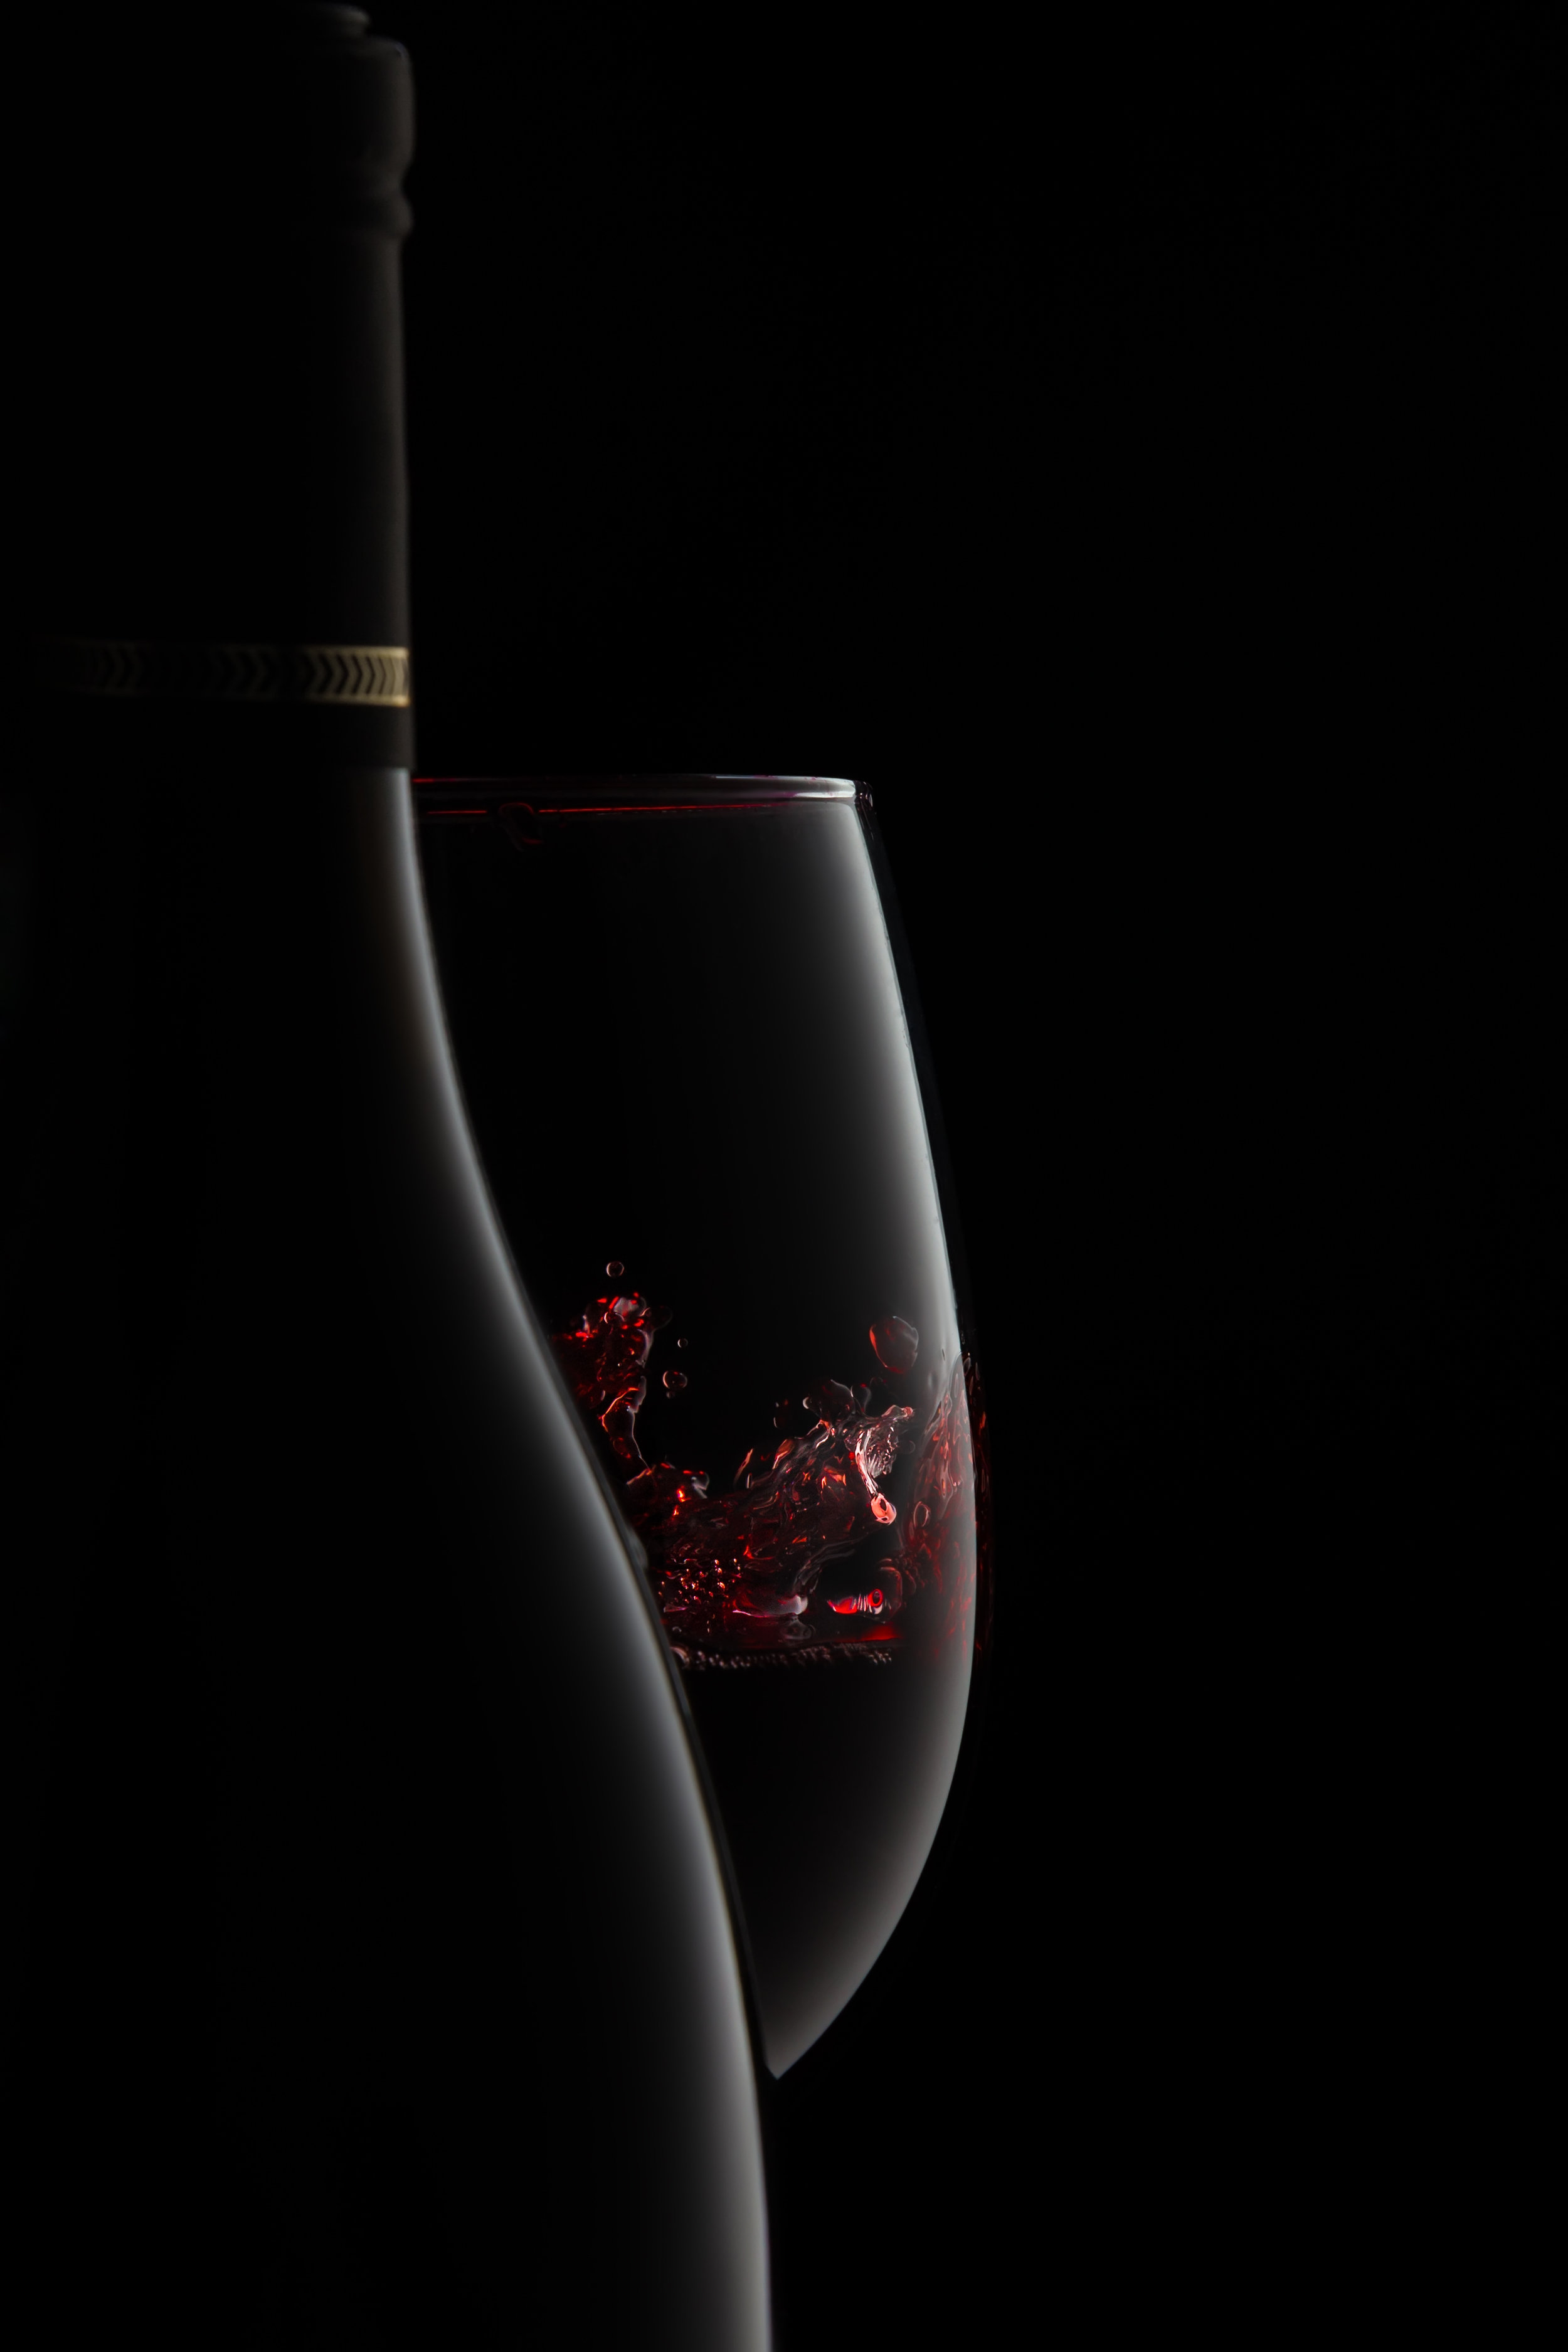 A-bottle-and-glass-of-elegant-red-wine-with-splash.-854703690_2730x4095.jpeg